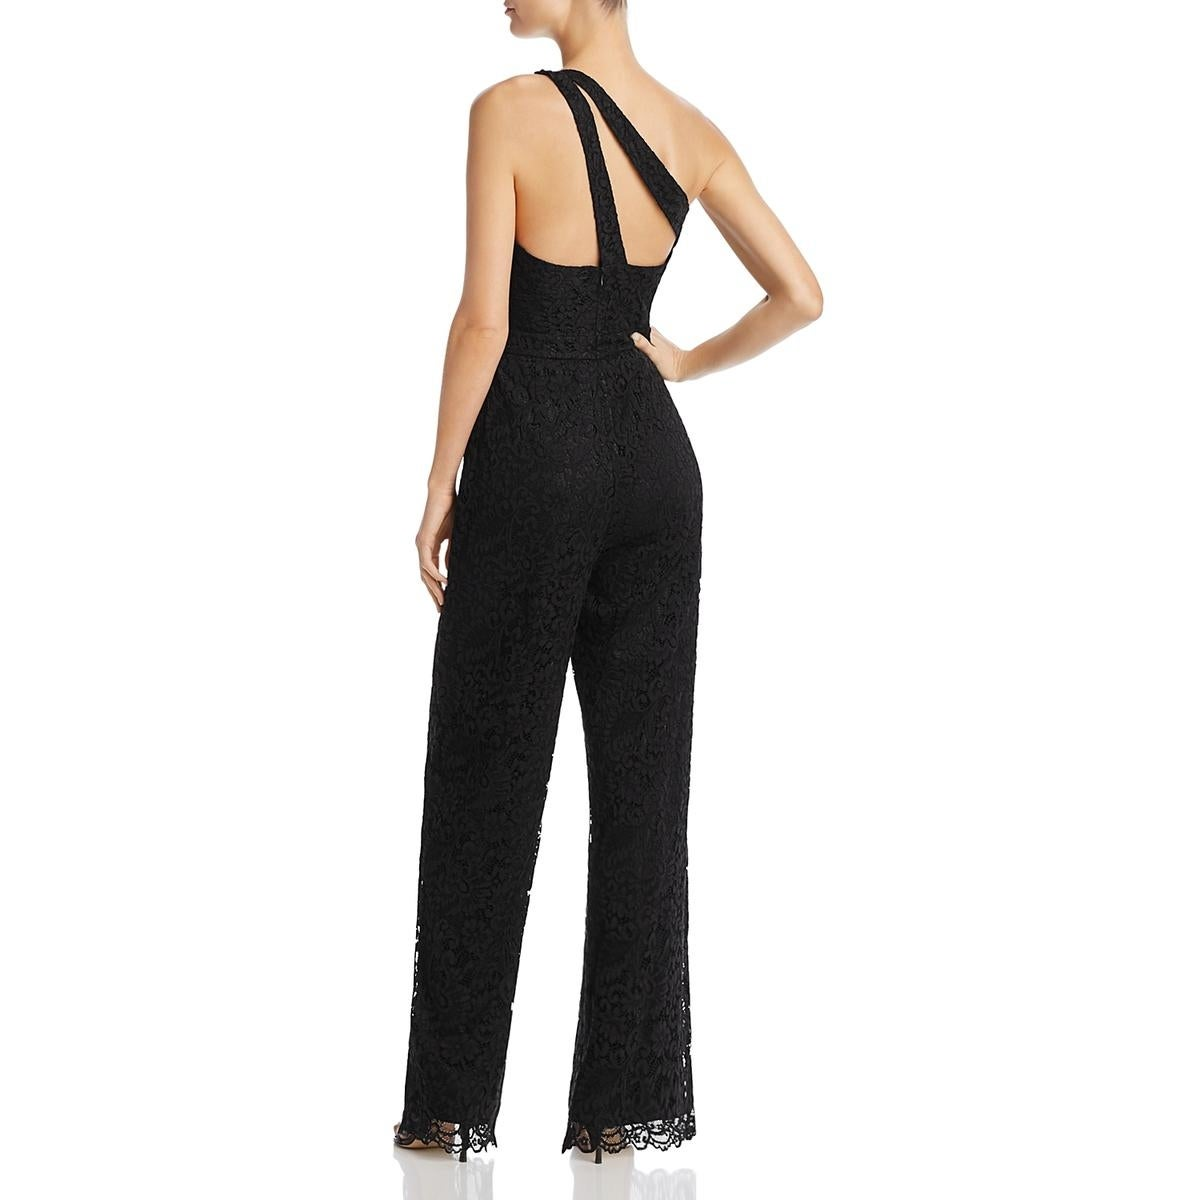 5bf192bde37 Shop Laundry by Shelli Segal Womens Jumpsuit Lace Wide Leg - On Sale - Free  Shipping On Orders Over  45 - Overstock.com - 23055200